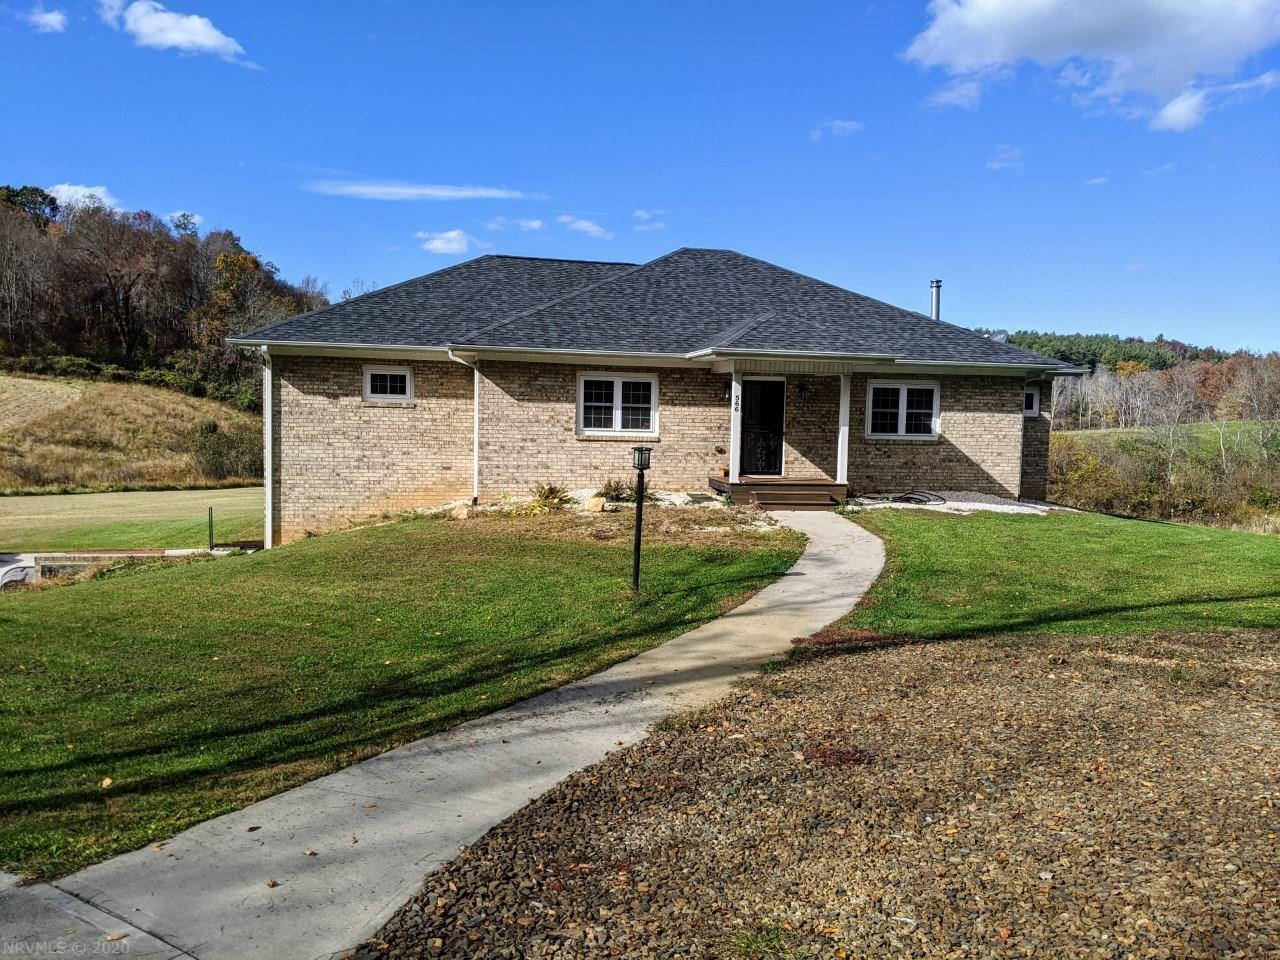 This beautiful 2014 Custom Built Brick Home on 8.54 Acres has it all! This home features 3 BRs & 2 Baths, plus 7x8 Office. Large walk-in closets in the bedrooms. White Oak hardwood Floors cover the 2010 Sq Ft., with Porcelain Tile in bathrooms, laundry room and office. Soap-Stone Hearth for included wood stove. Recessed Lighting and ceiling fans. Beautiful Quartz Counter tops in the kitchen and Marble Counter tops in the bathrooms. Soft close cabinet doors in kitchen. Walk-in Pantry. 3-season room. Full walk-out Basement with a double car garage. Cold storage room. Poured Concrete Walls. Architectural 50 year Shingles. Fenced-in back yard patio. Concrete Driveway. This property is great laying, cleared and wooded with a creek, fruit trees and grape vines. Partially fenced for livestock with two 12x20 shelters. Hook up for whole house generator. Multi-stage water purification system in kitchen. Gas heat and on-demand, gas-fired water heater. Underground 500 gallon tank.